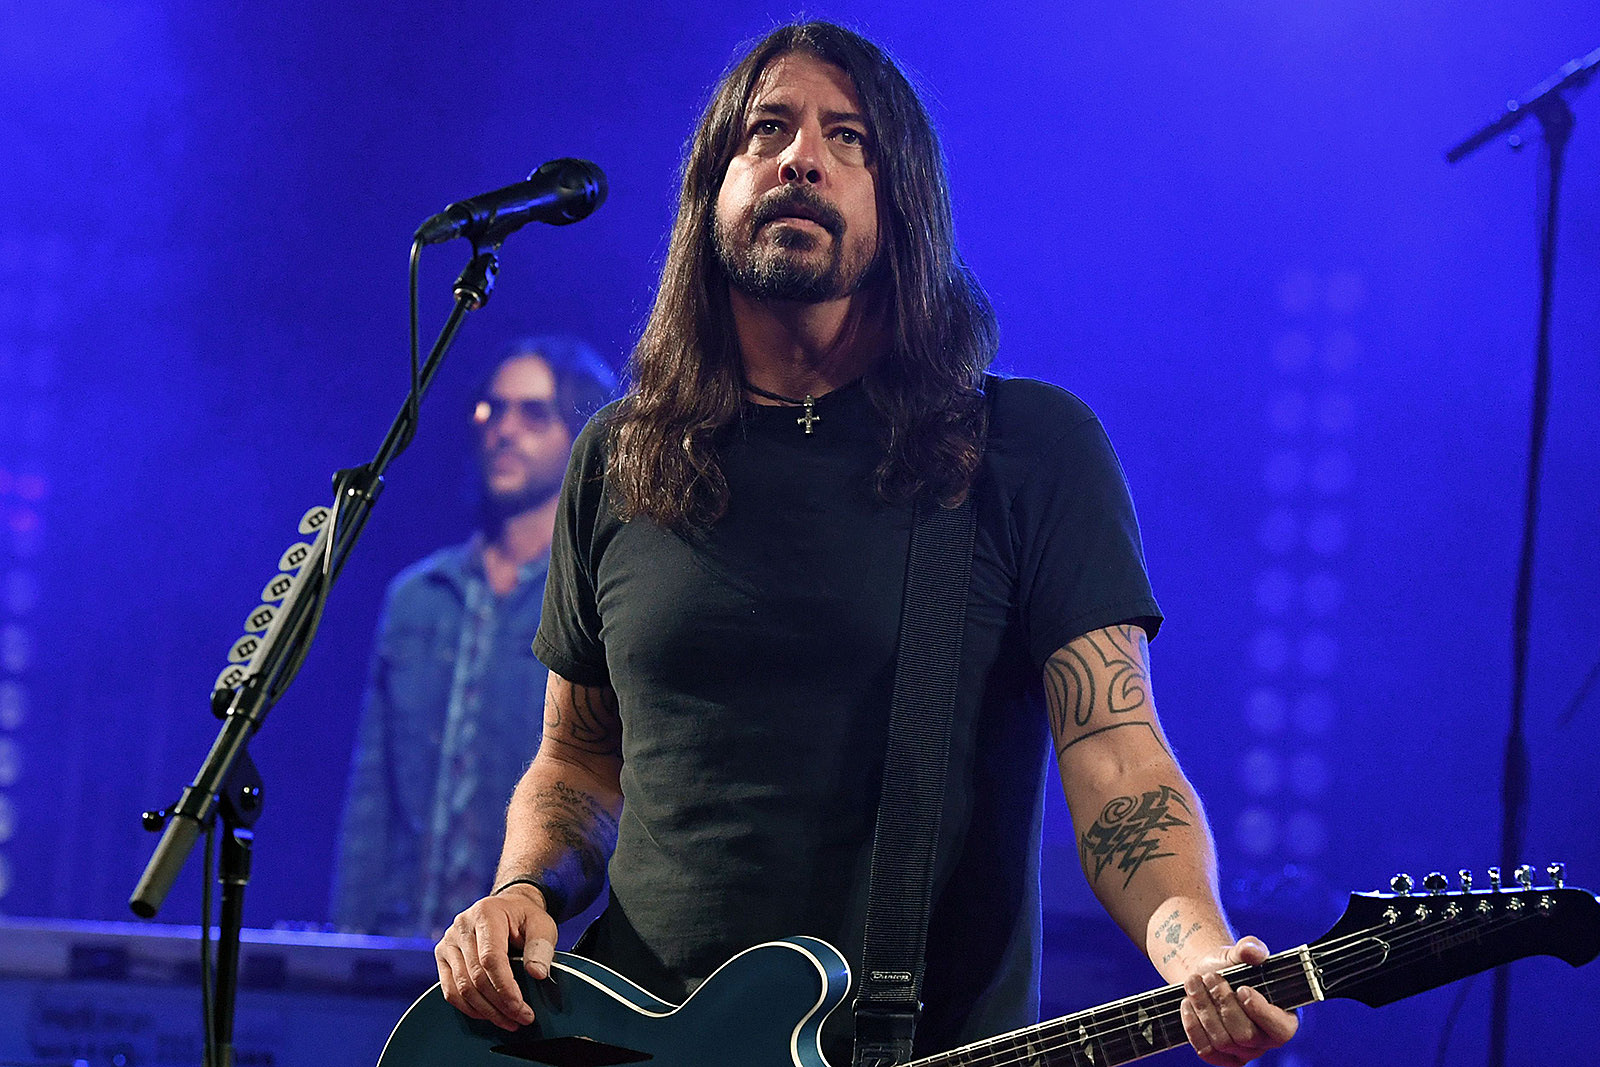 Dave Grohl Won't Be Stoned at Rock Hall This Time